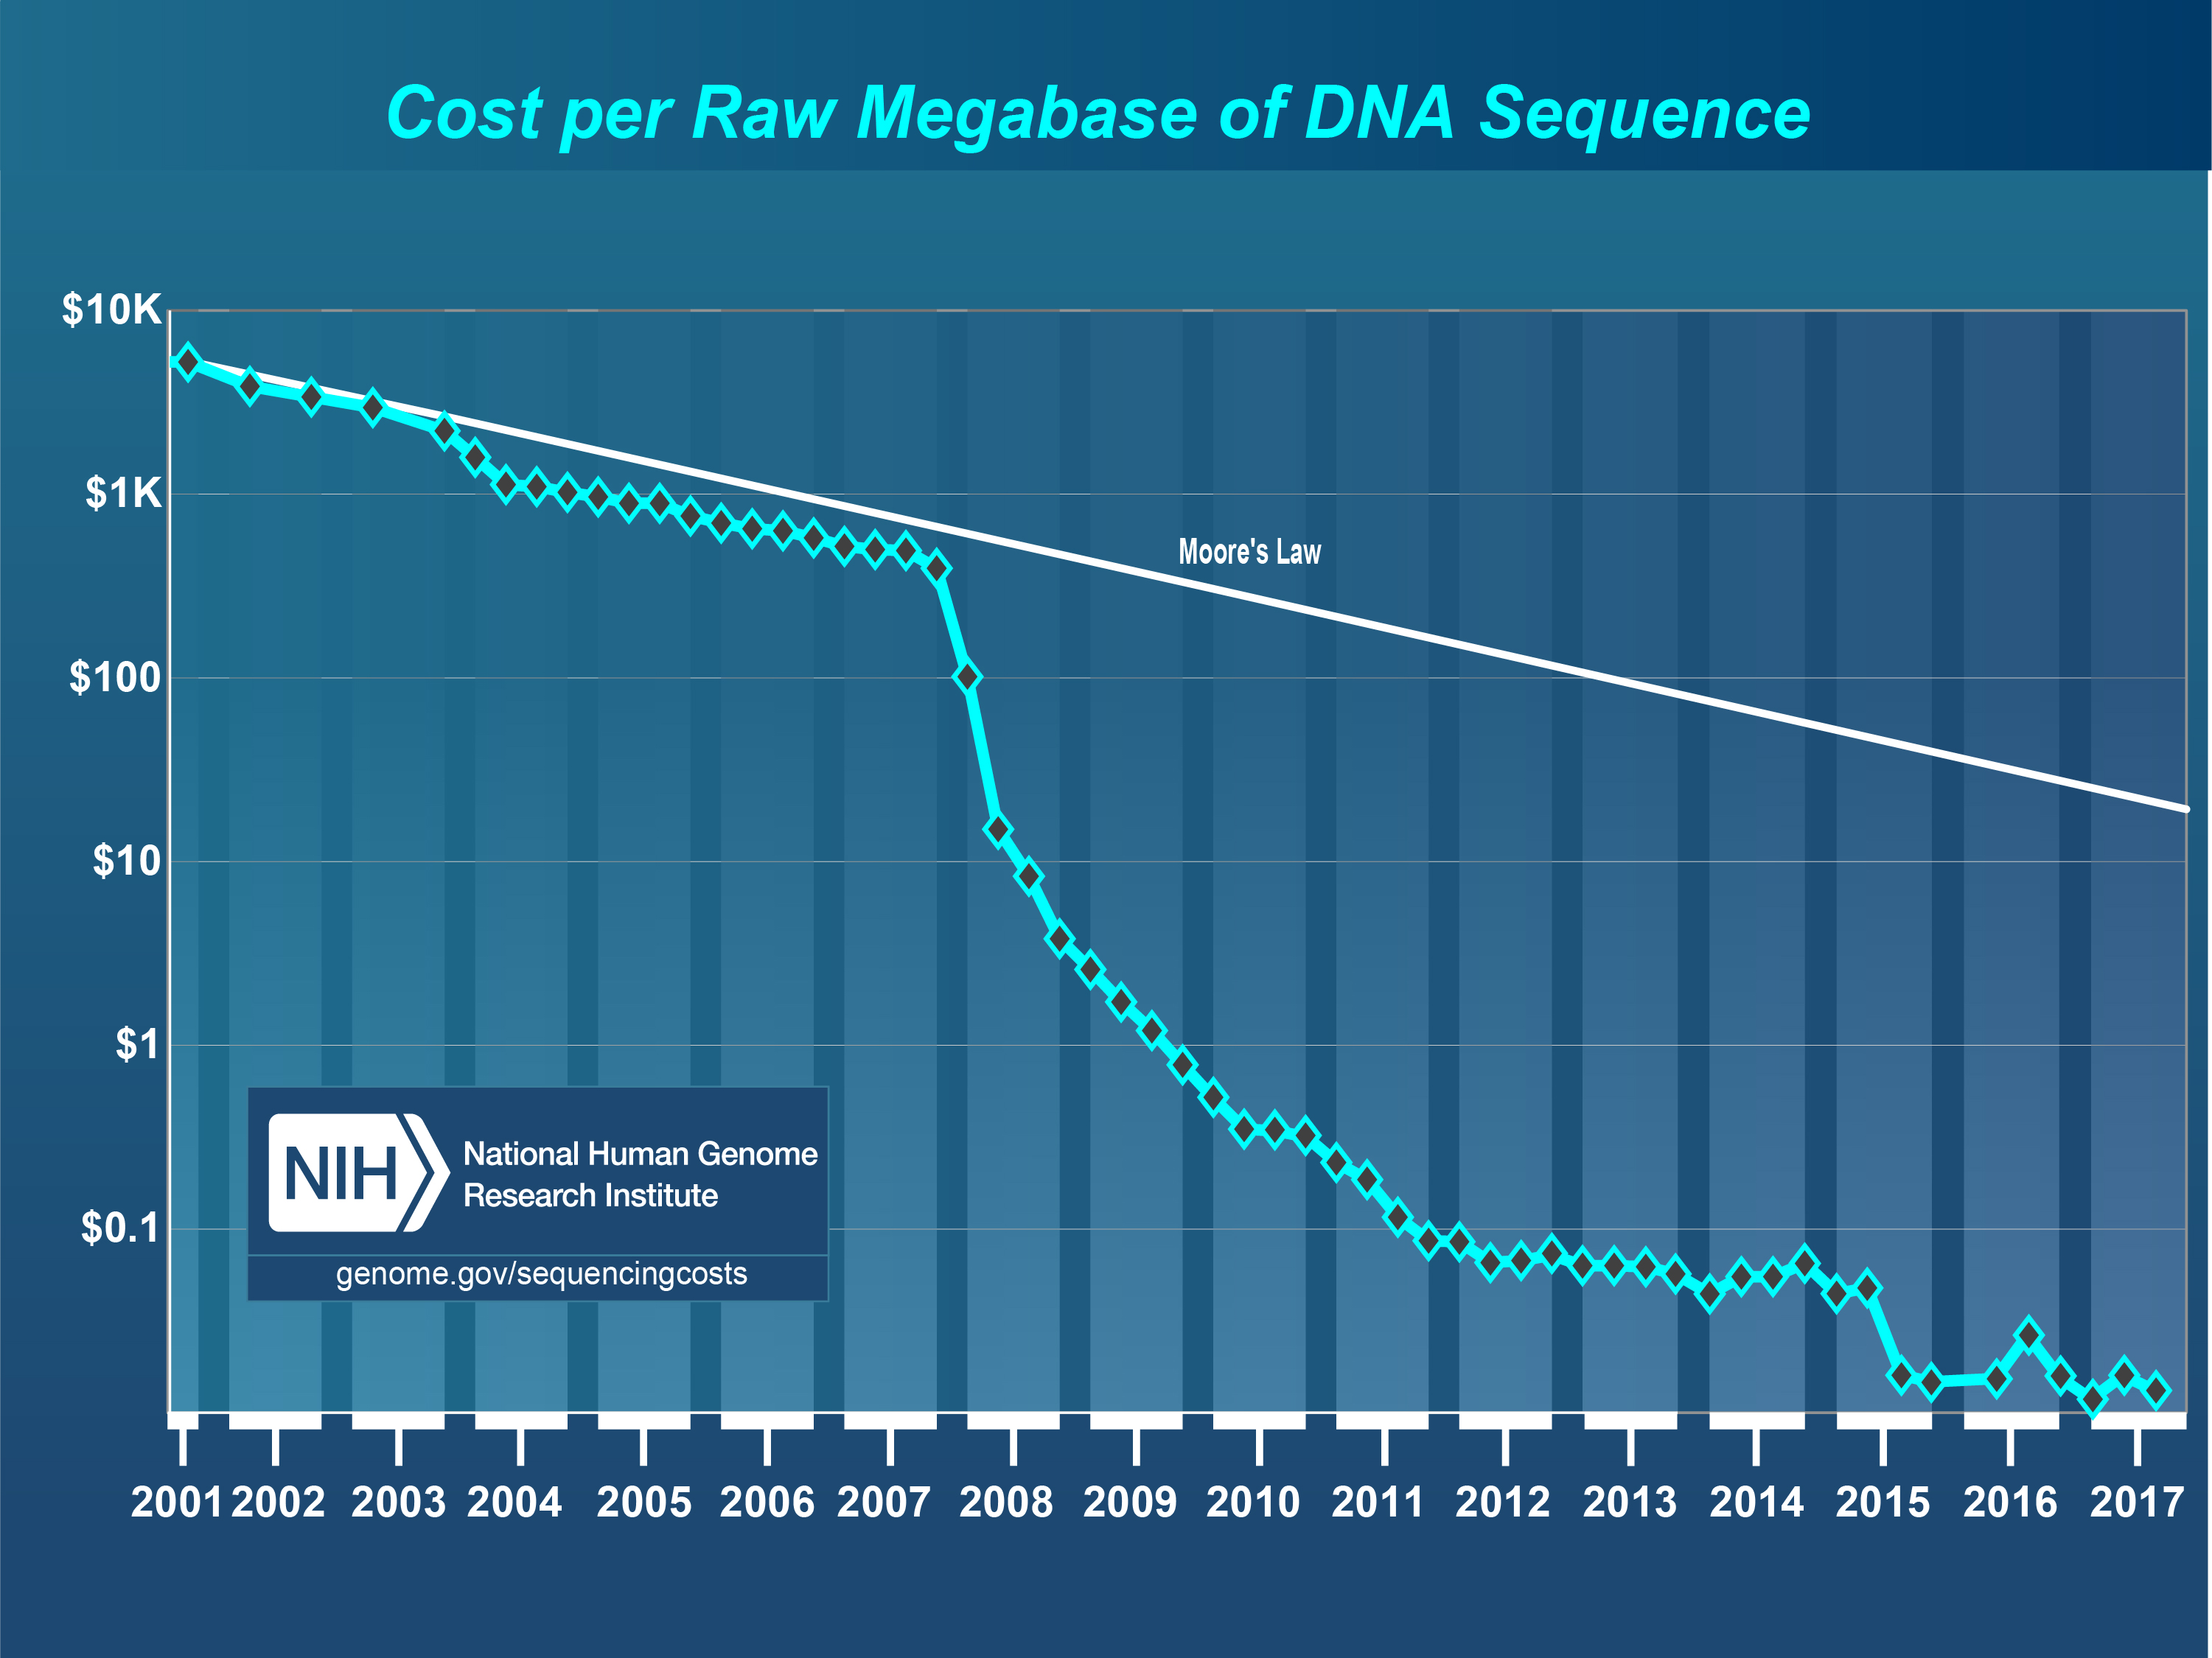 Cost per Raw Megabase of DNA Sequence